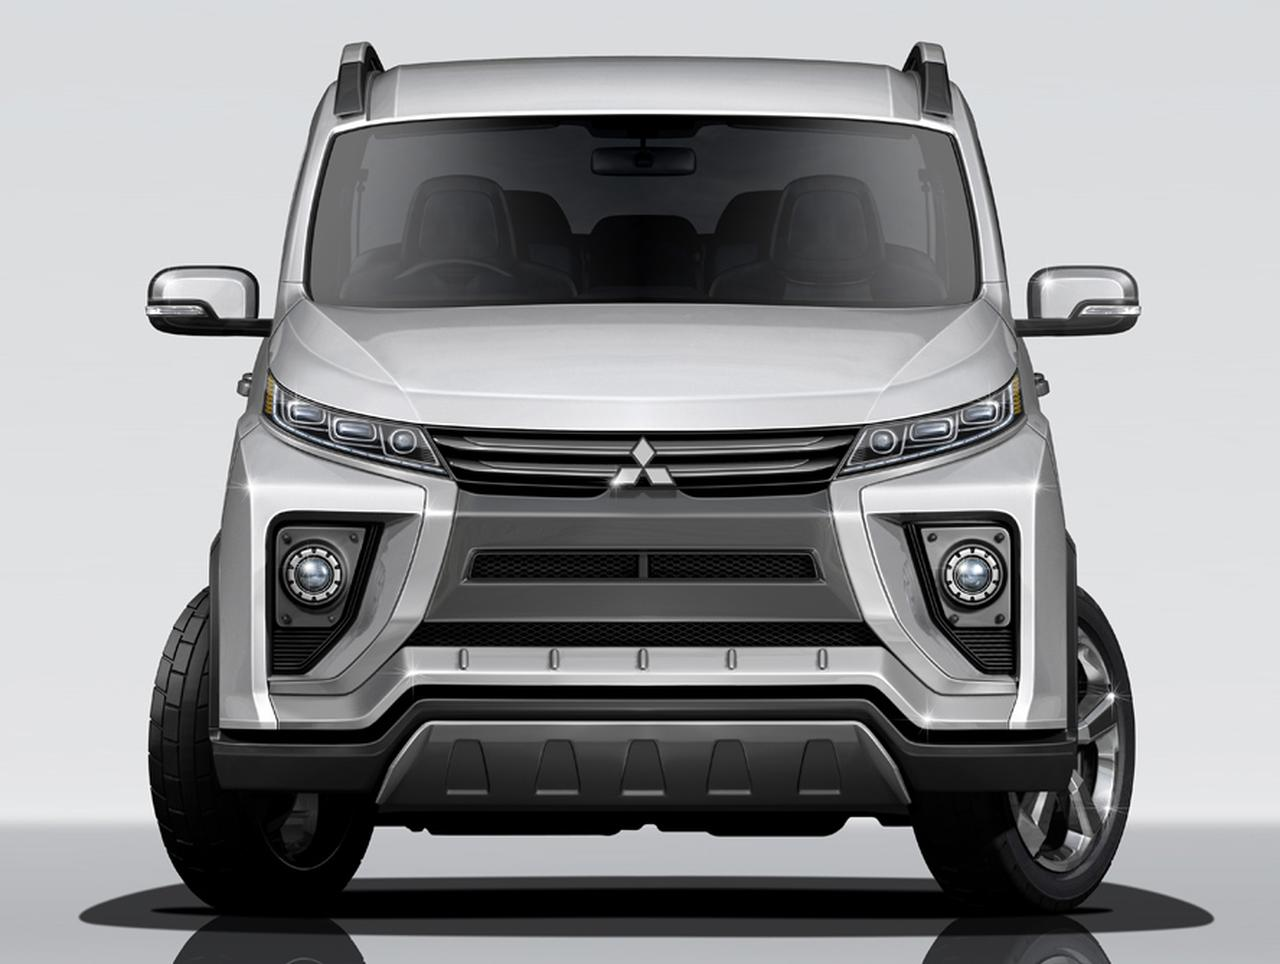 2018 Mitsubishi Delica Previewed By Concept Heading To Tokyo Motor